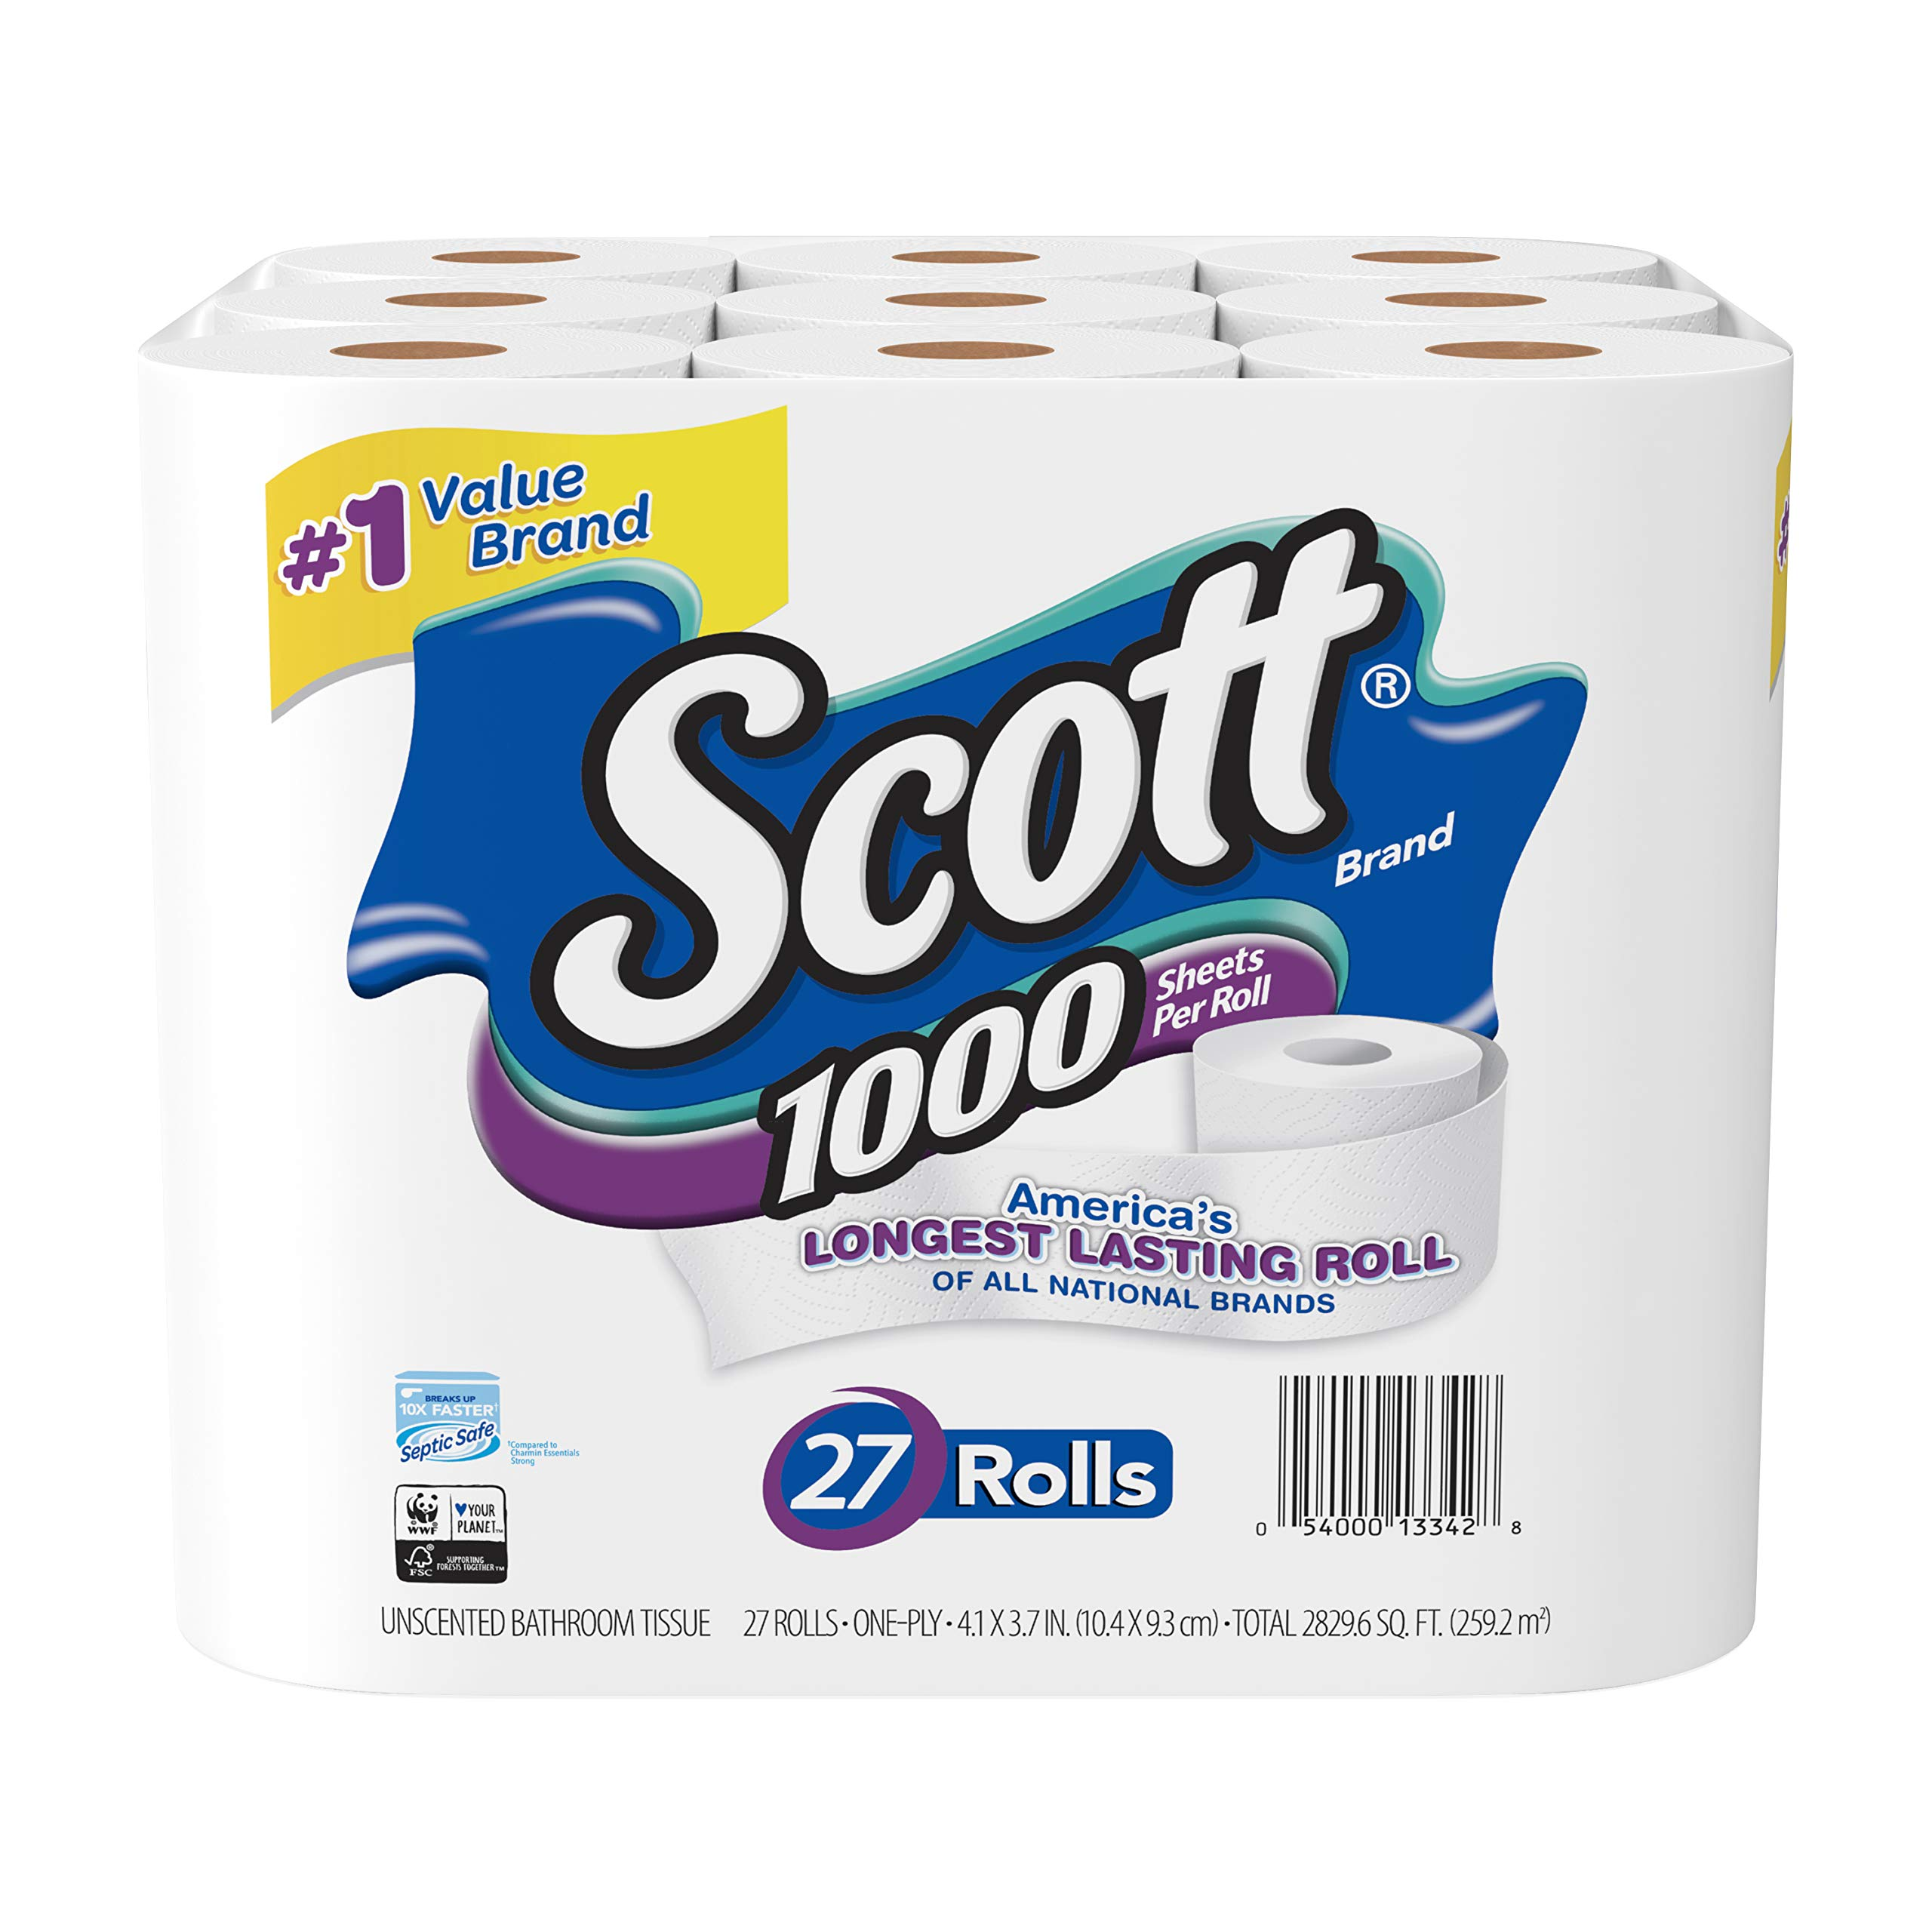 Scott 1000 Sheetsper Roll Toilet Paper, 27 Rolls, Bath Tissue by Scott